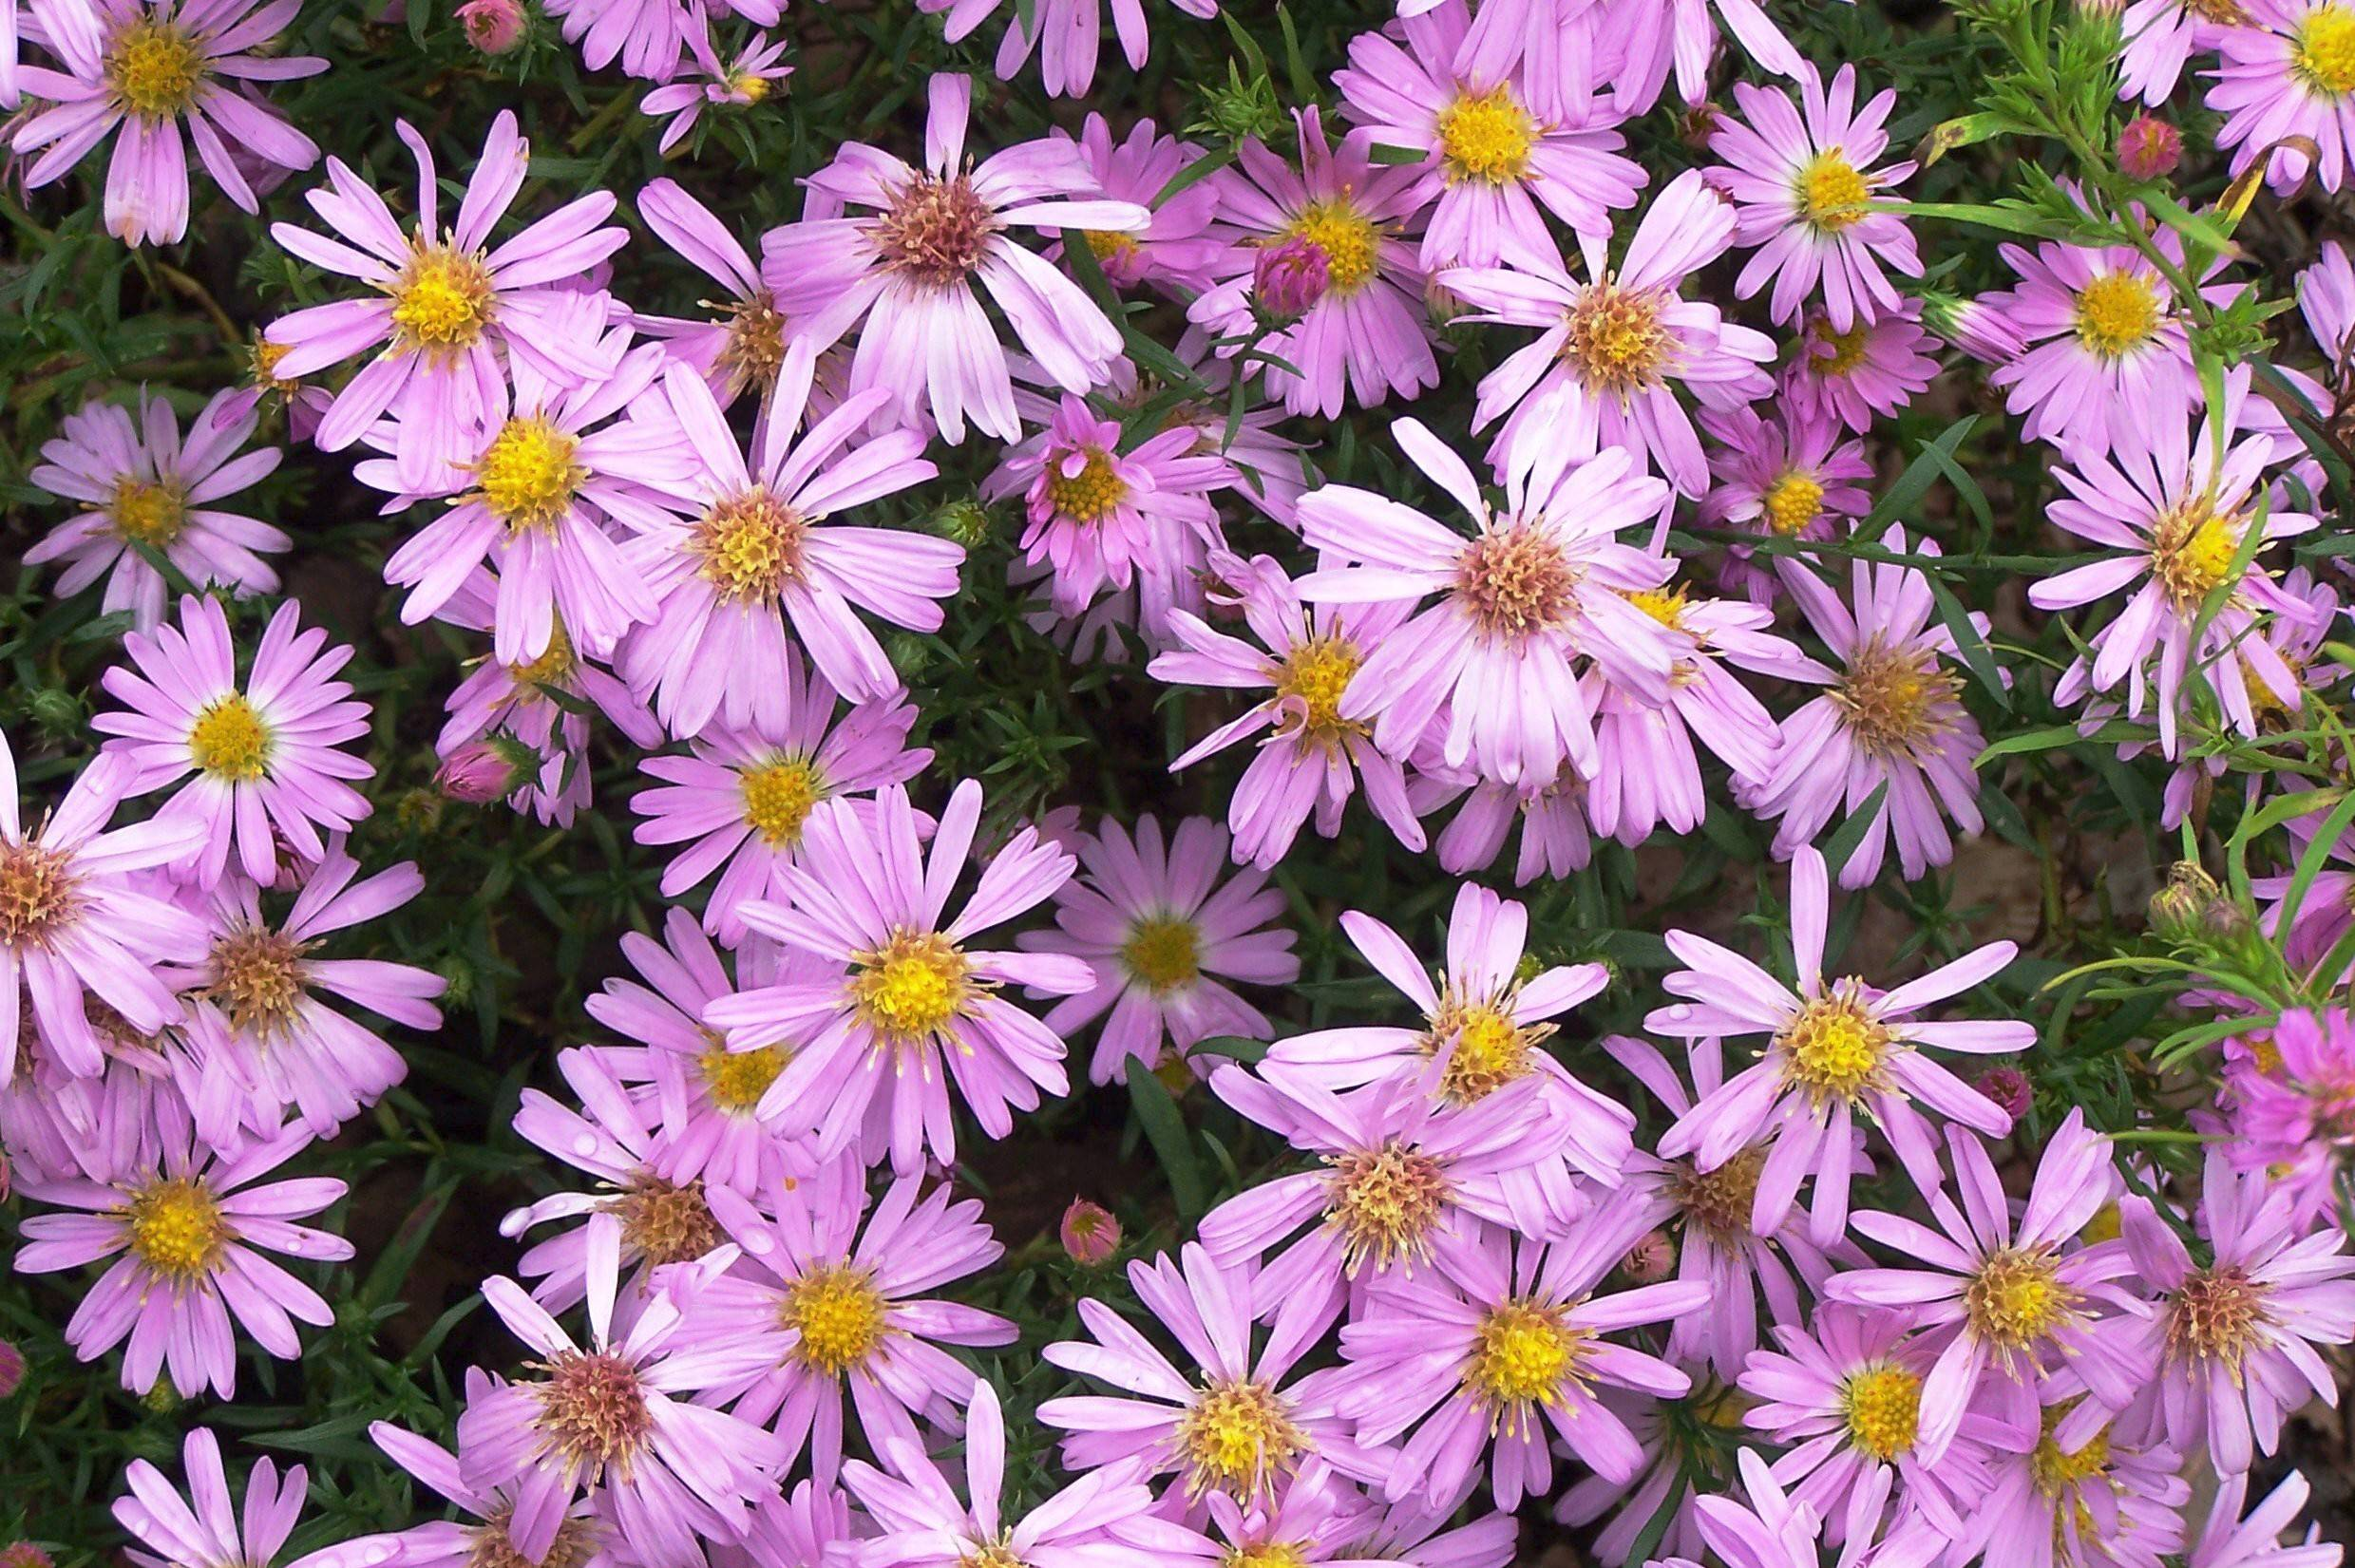 Asters bloom in shades of pink white blue and purple.